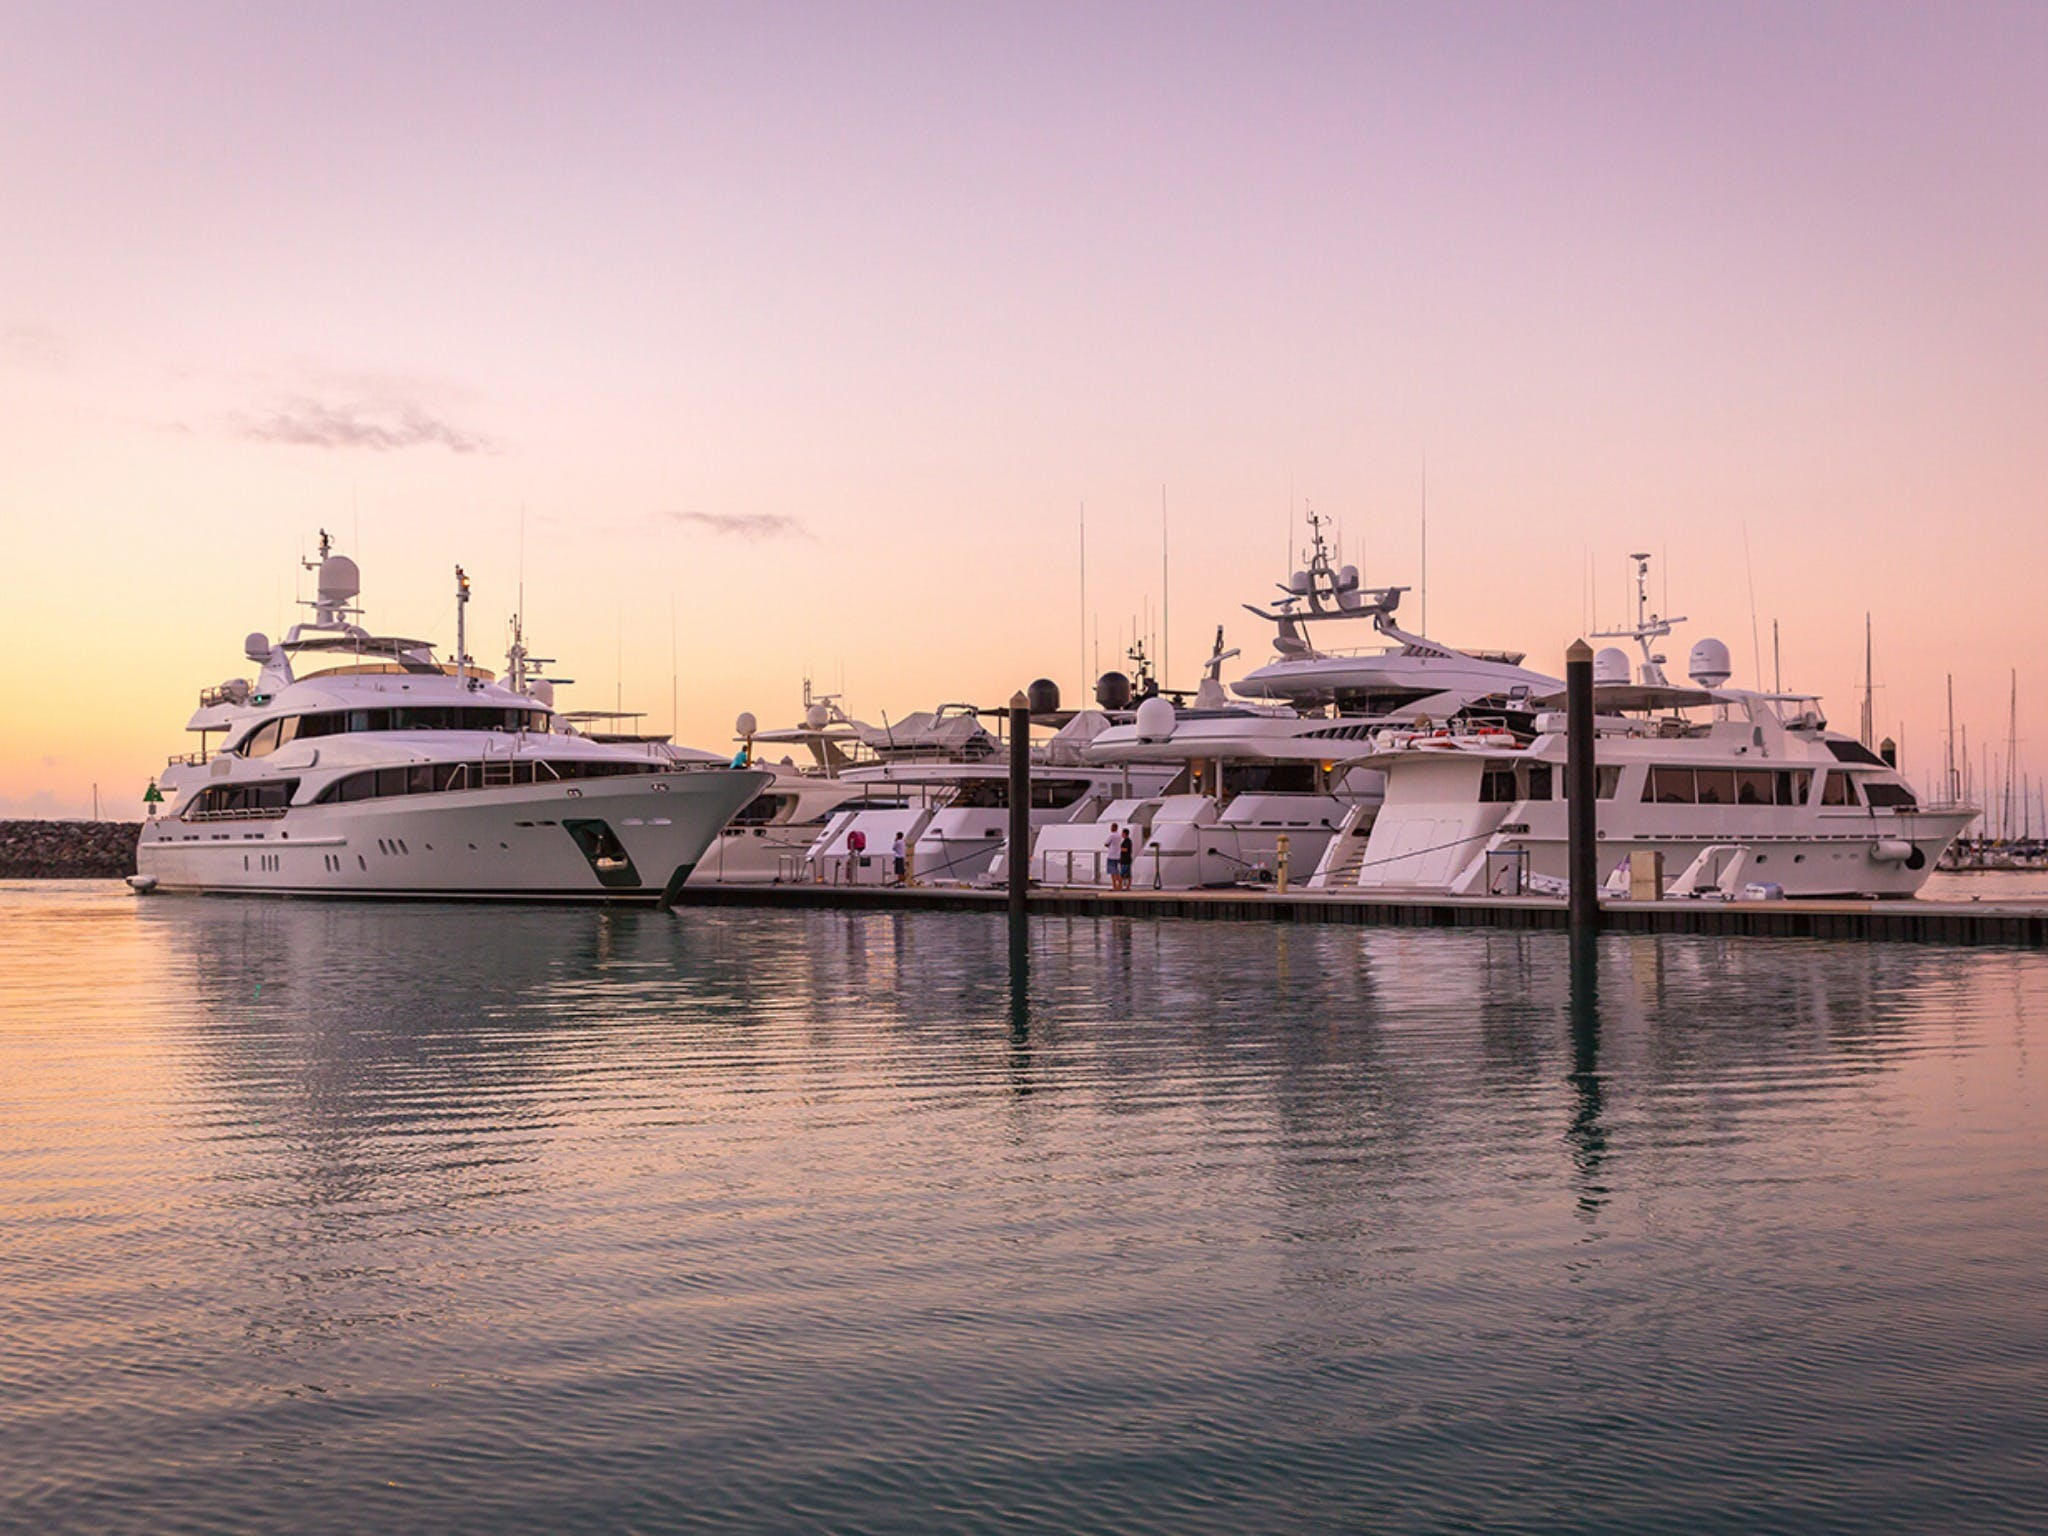 Australian Superyacht Rendezvous - Great Barrier Reef edition - Accommodation Brisbane